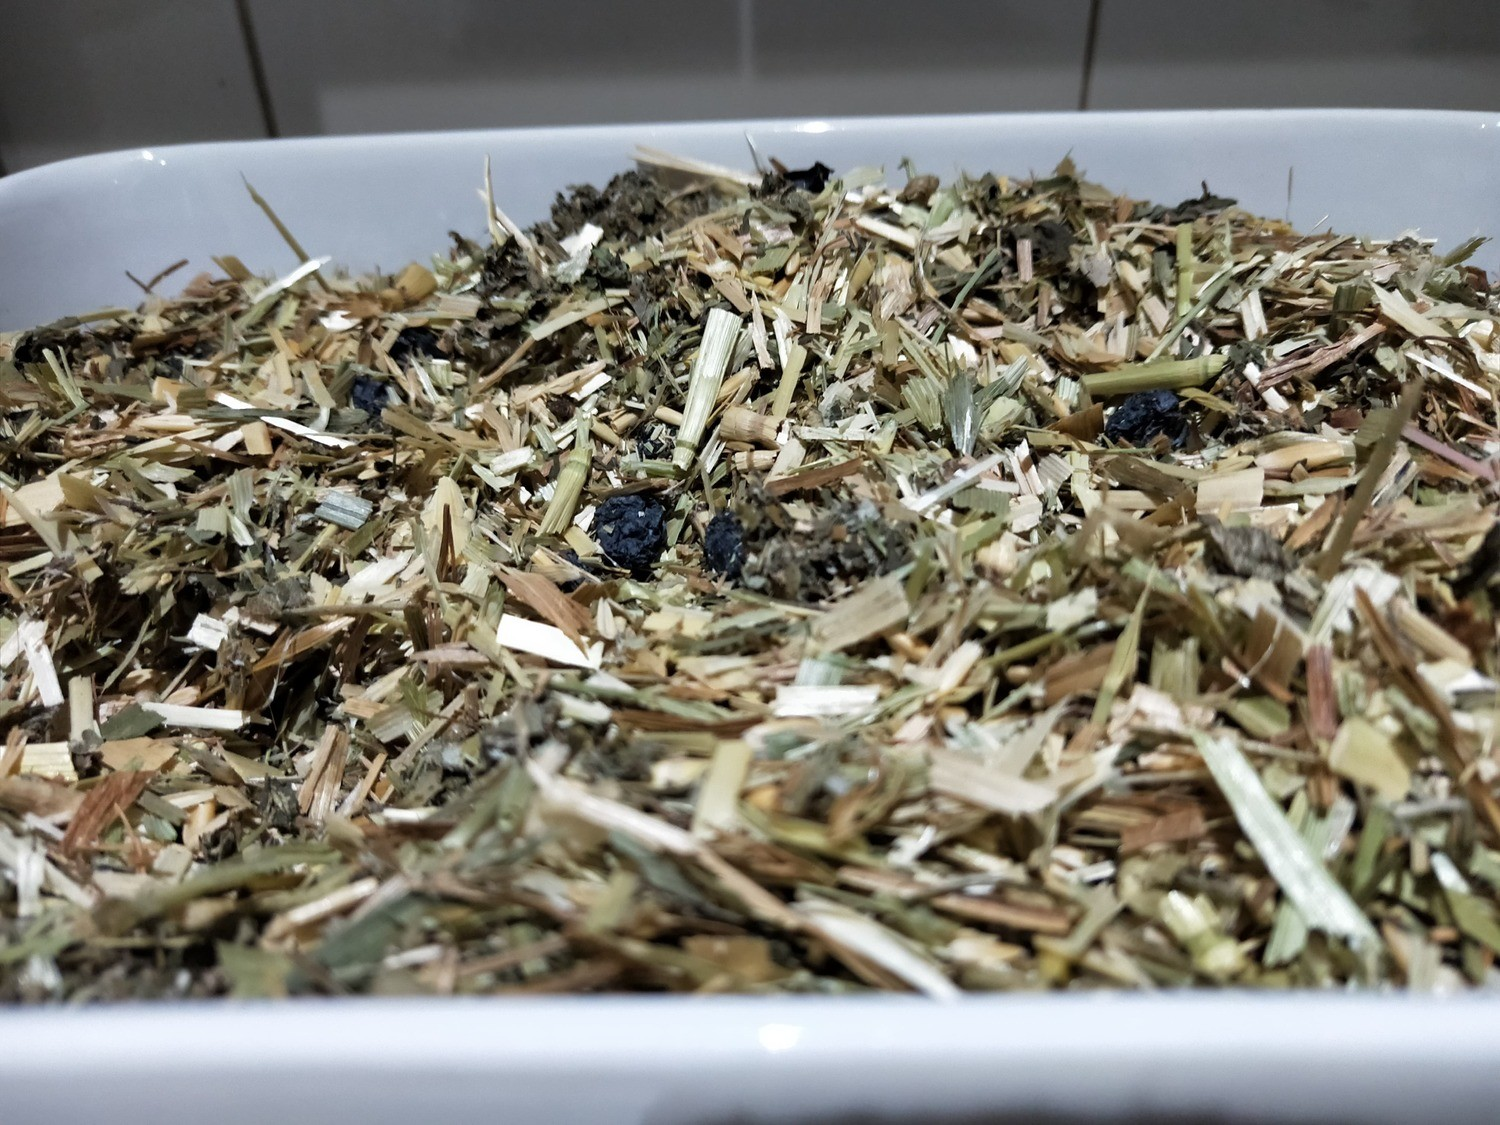 Chaff Mix with Blueberries, Raspberry leaves & Peppermint